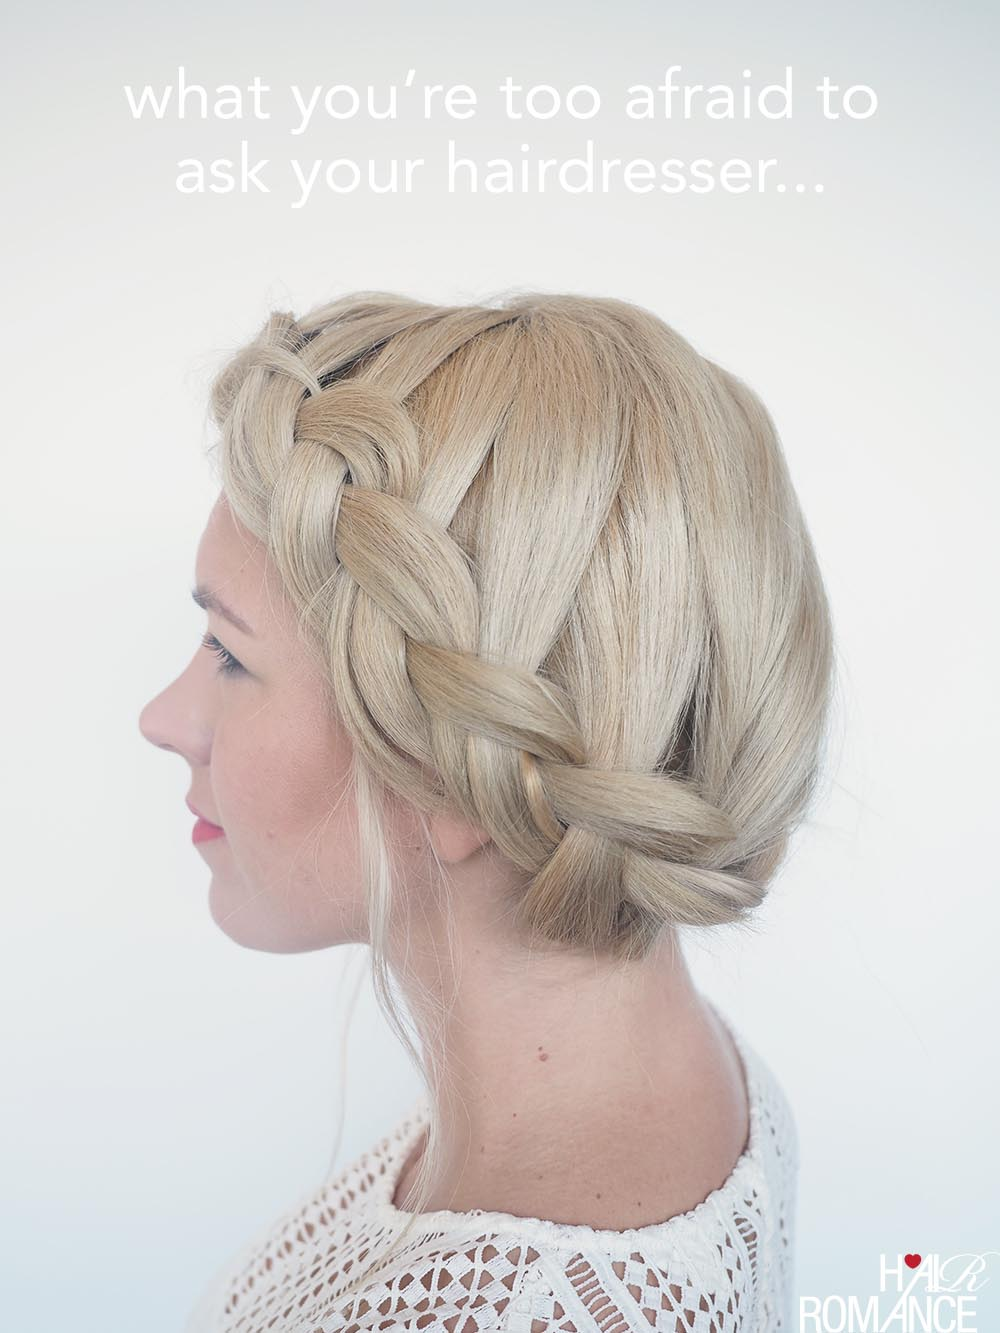 What you're too afraid to ask your hairdresser - Braids with Hair Romance